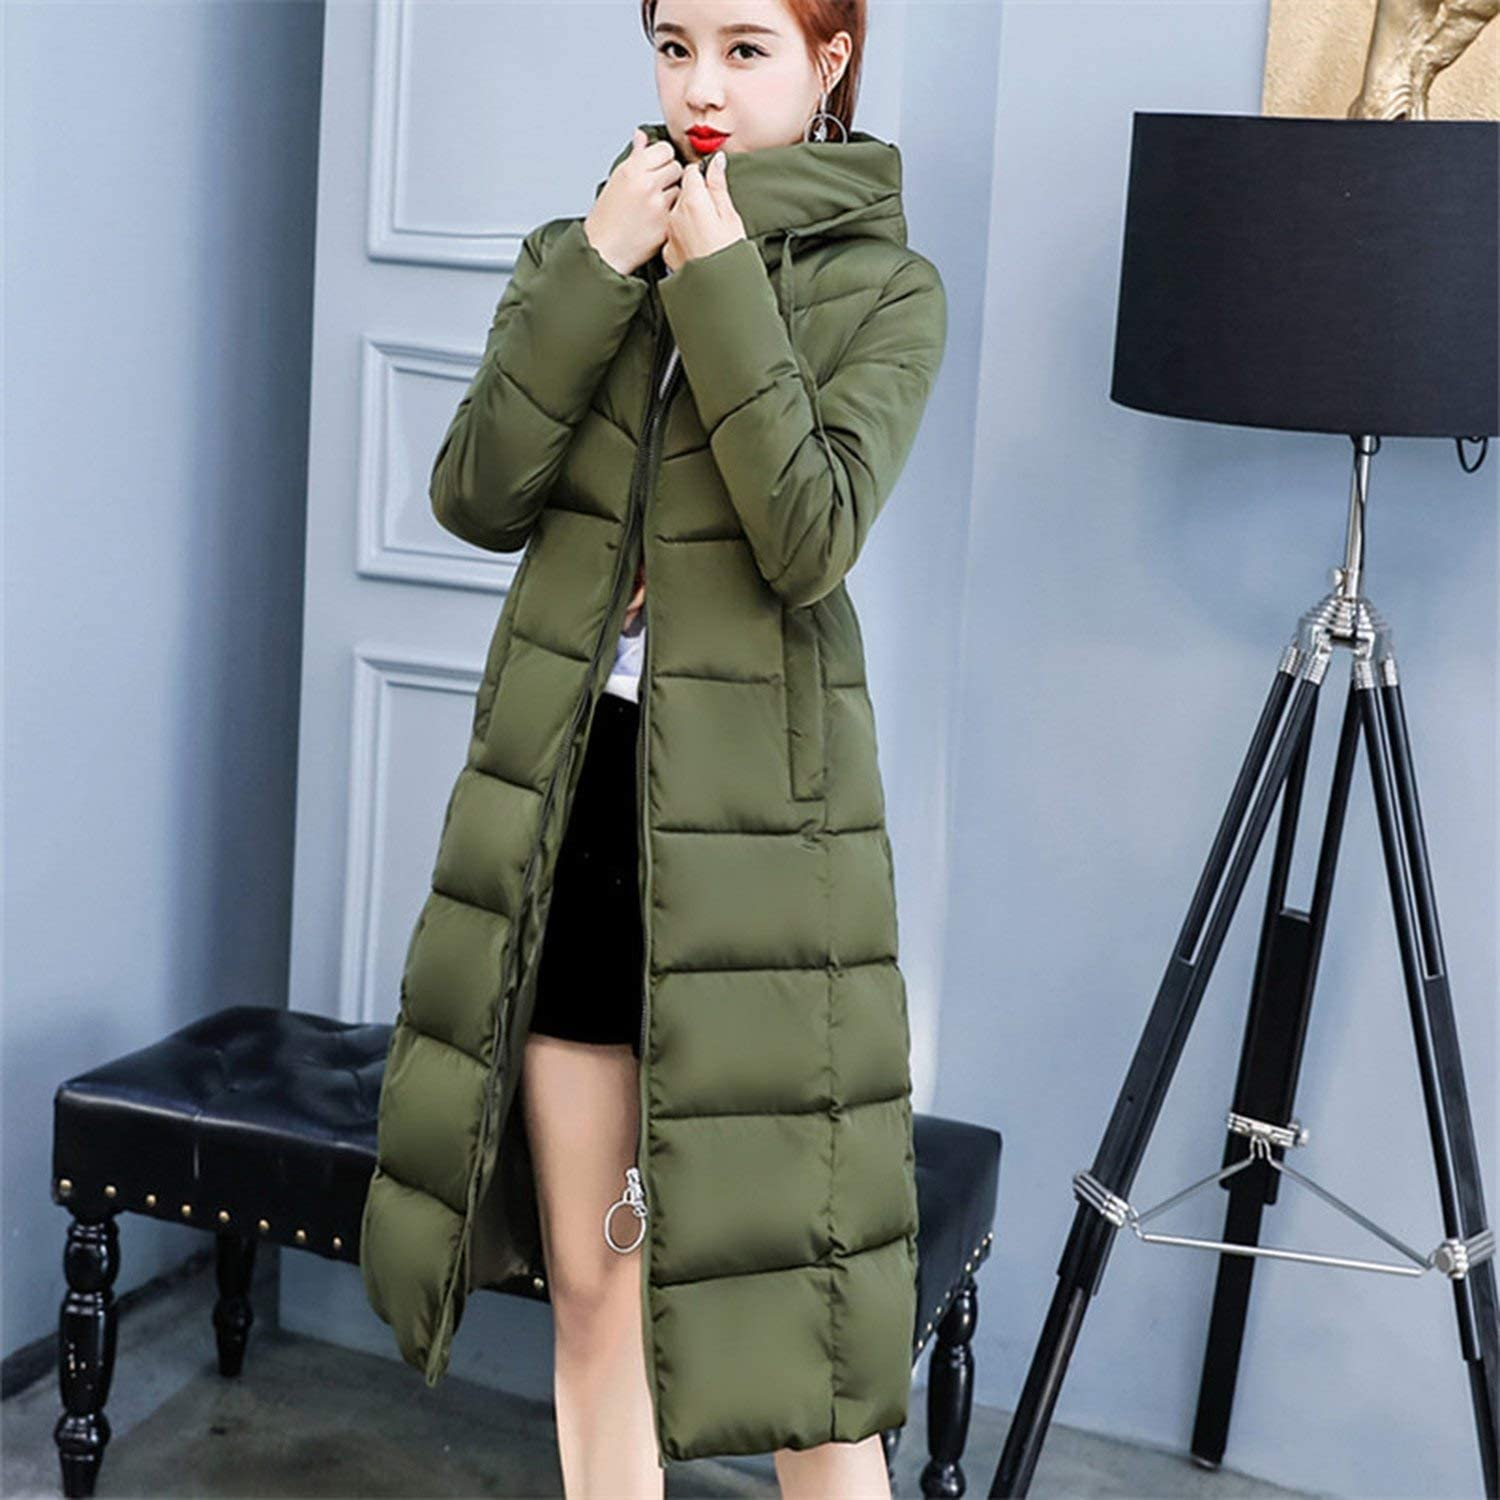 Winter Slim Long Section Female Warm Coat Casual Thicken Hooded Collar Clothes Womens Clo,Black,M